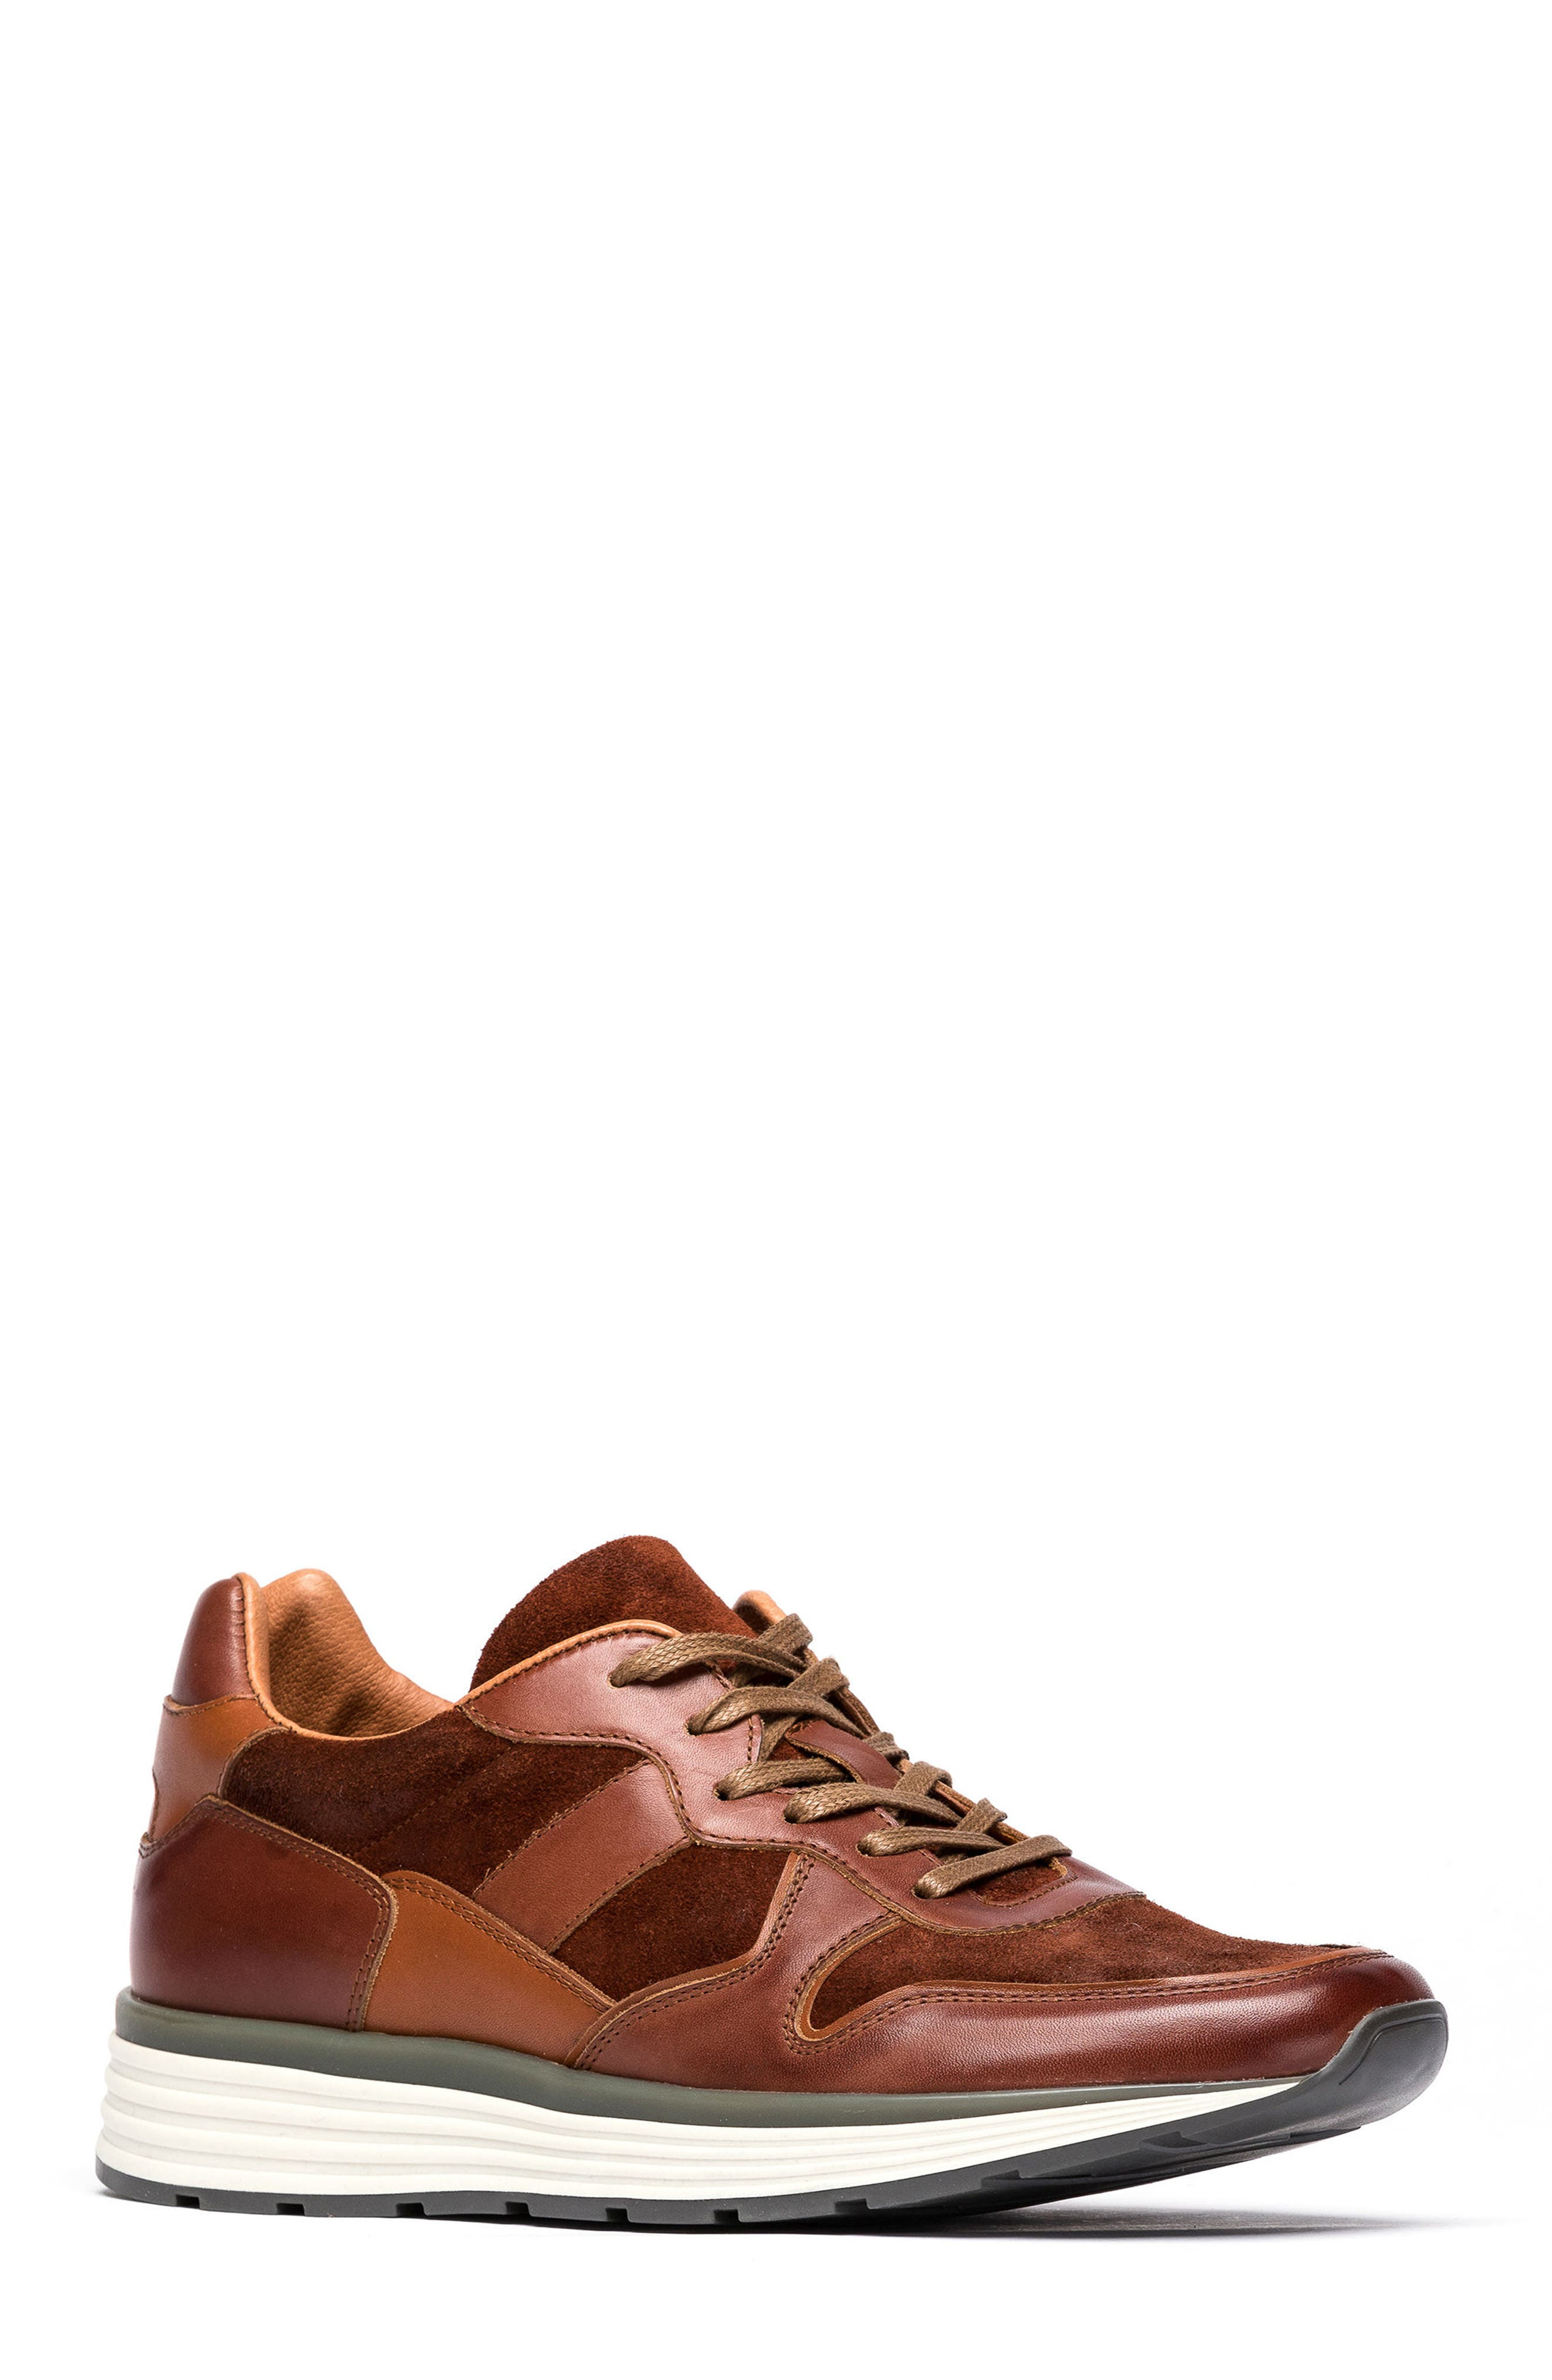 Hickory Sneaker,                         Main,                         color,